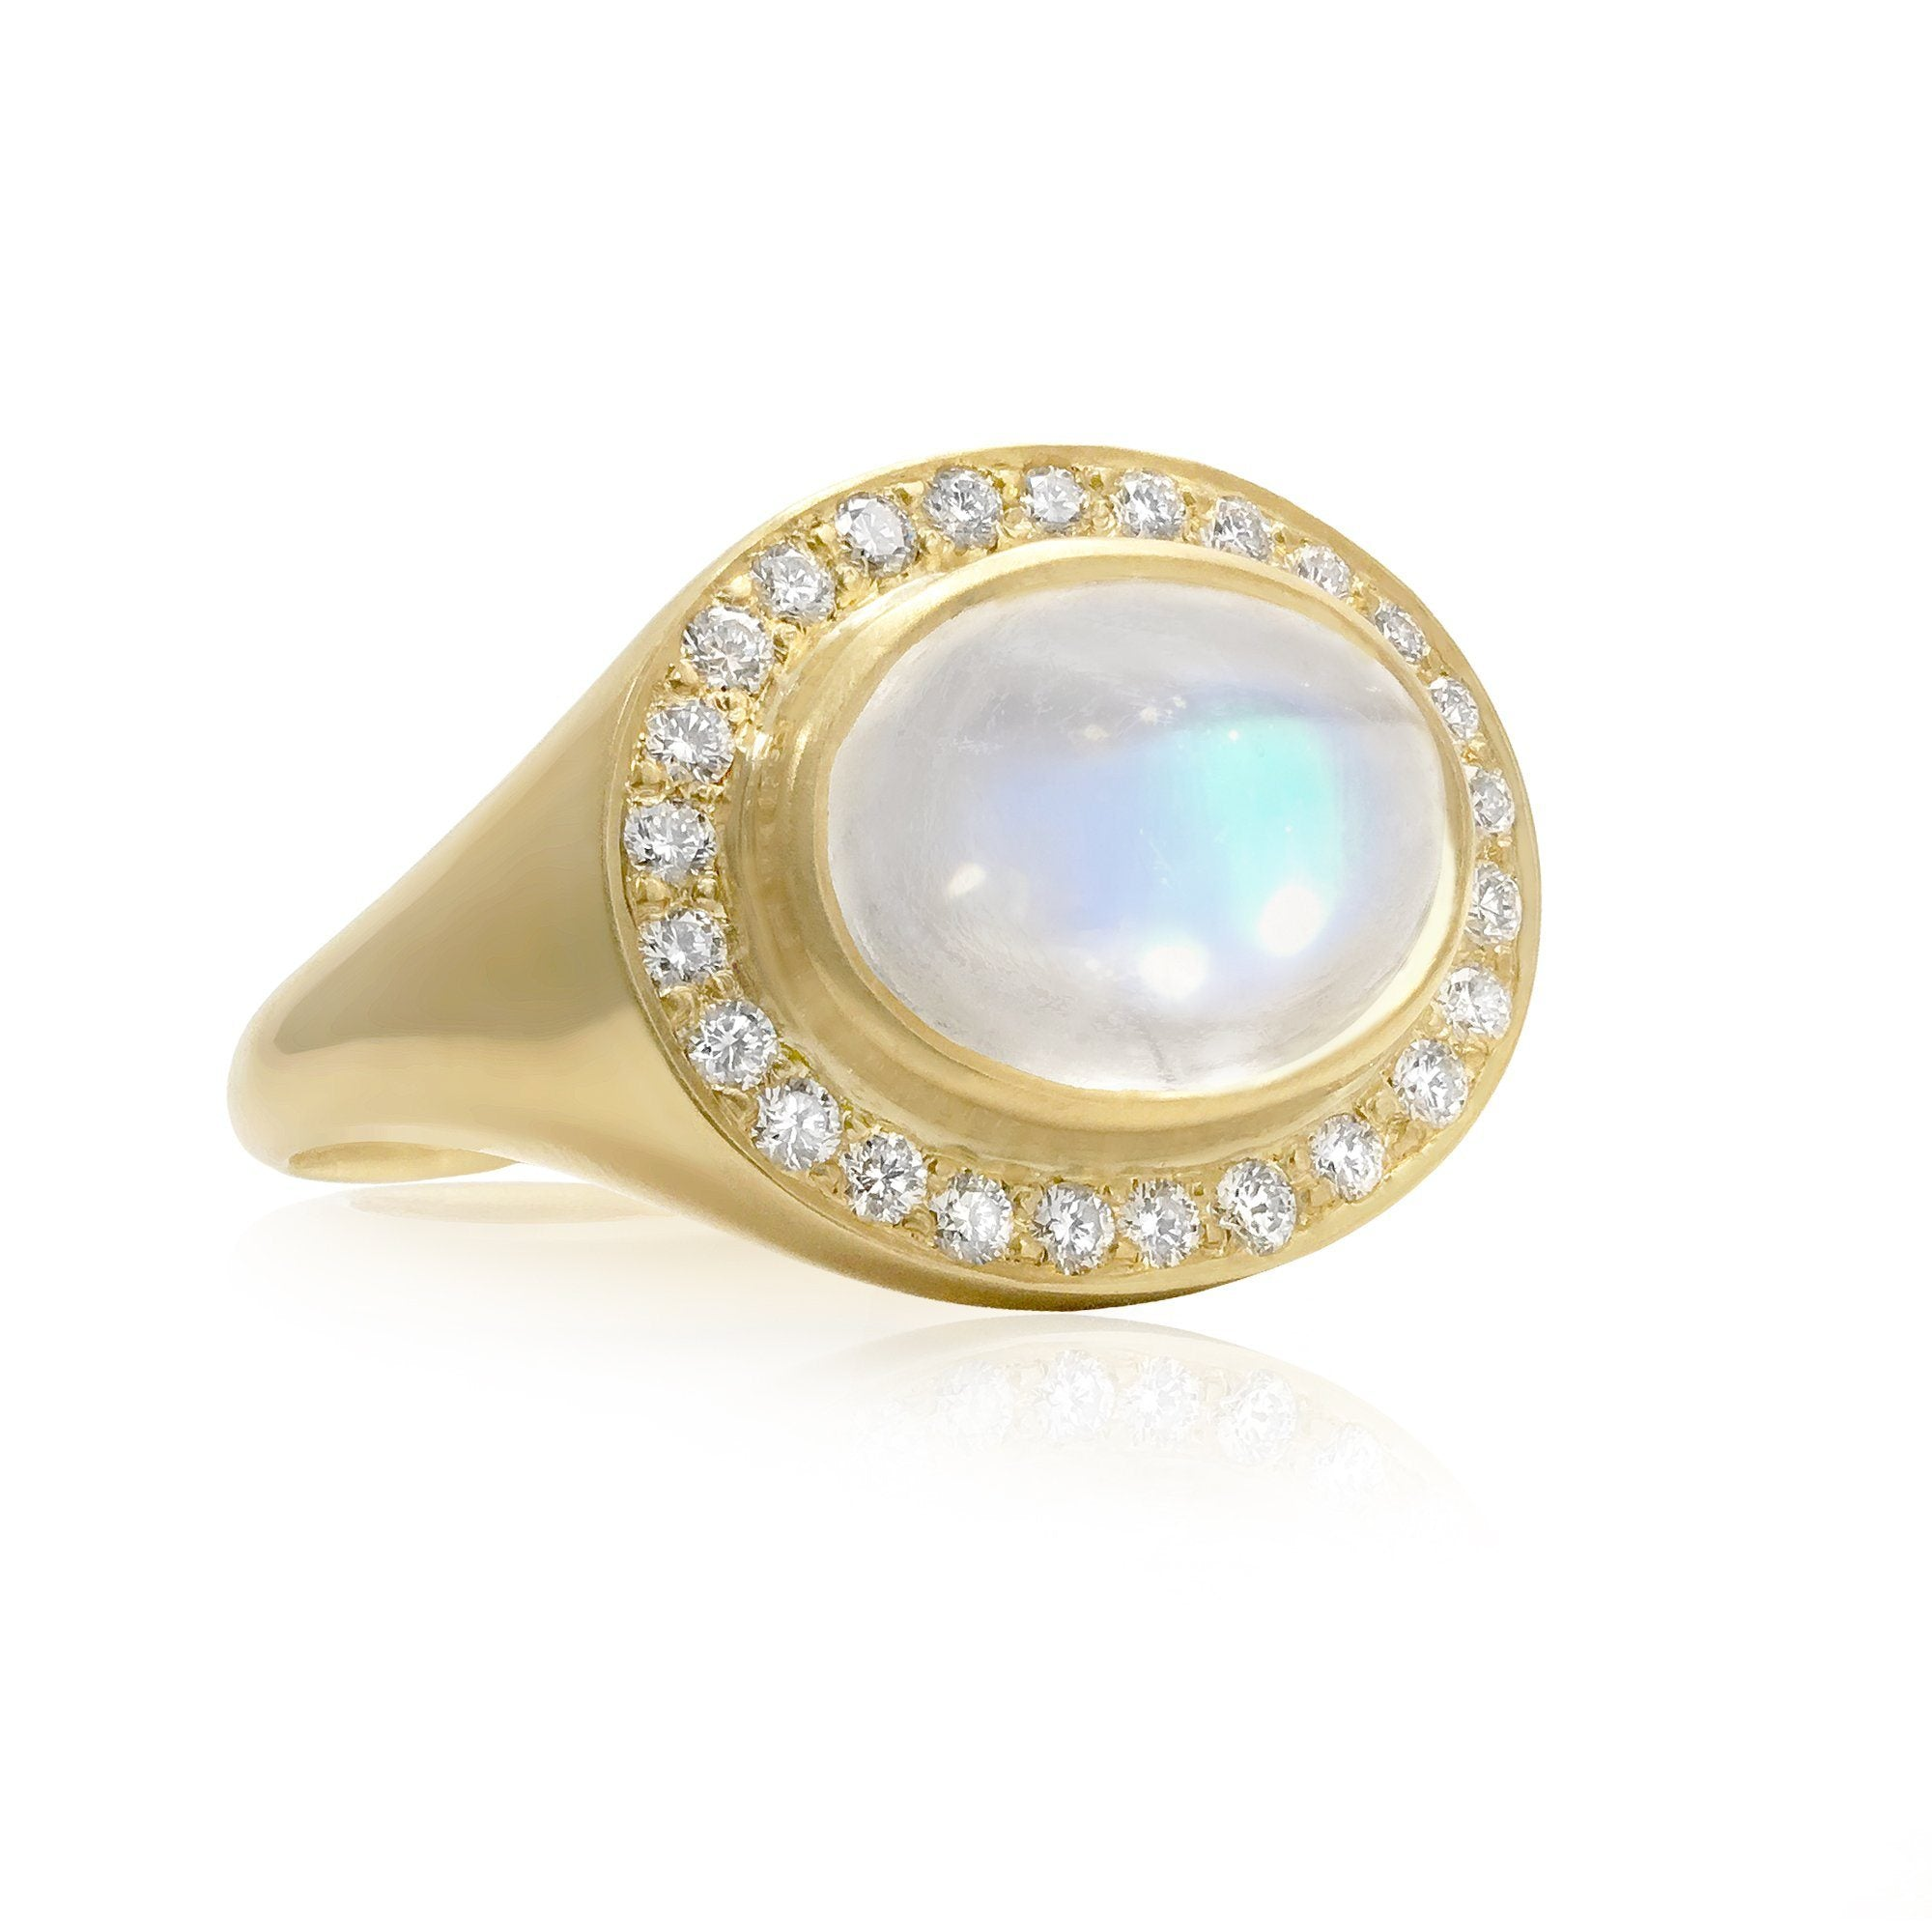 ulka benbrook rings diamond rocks moonstone white products ring asherton in gold